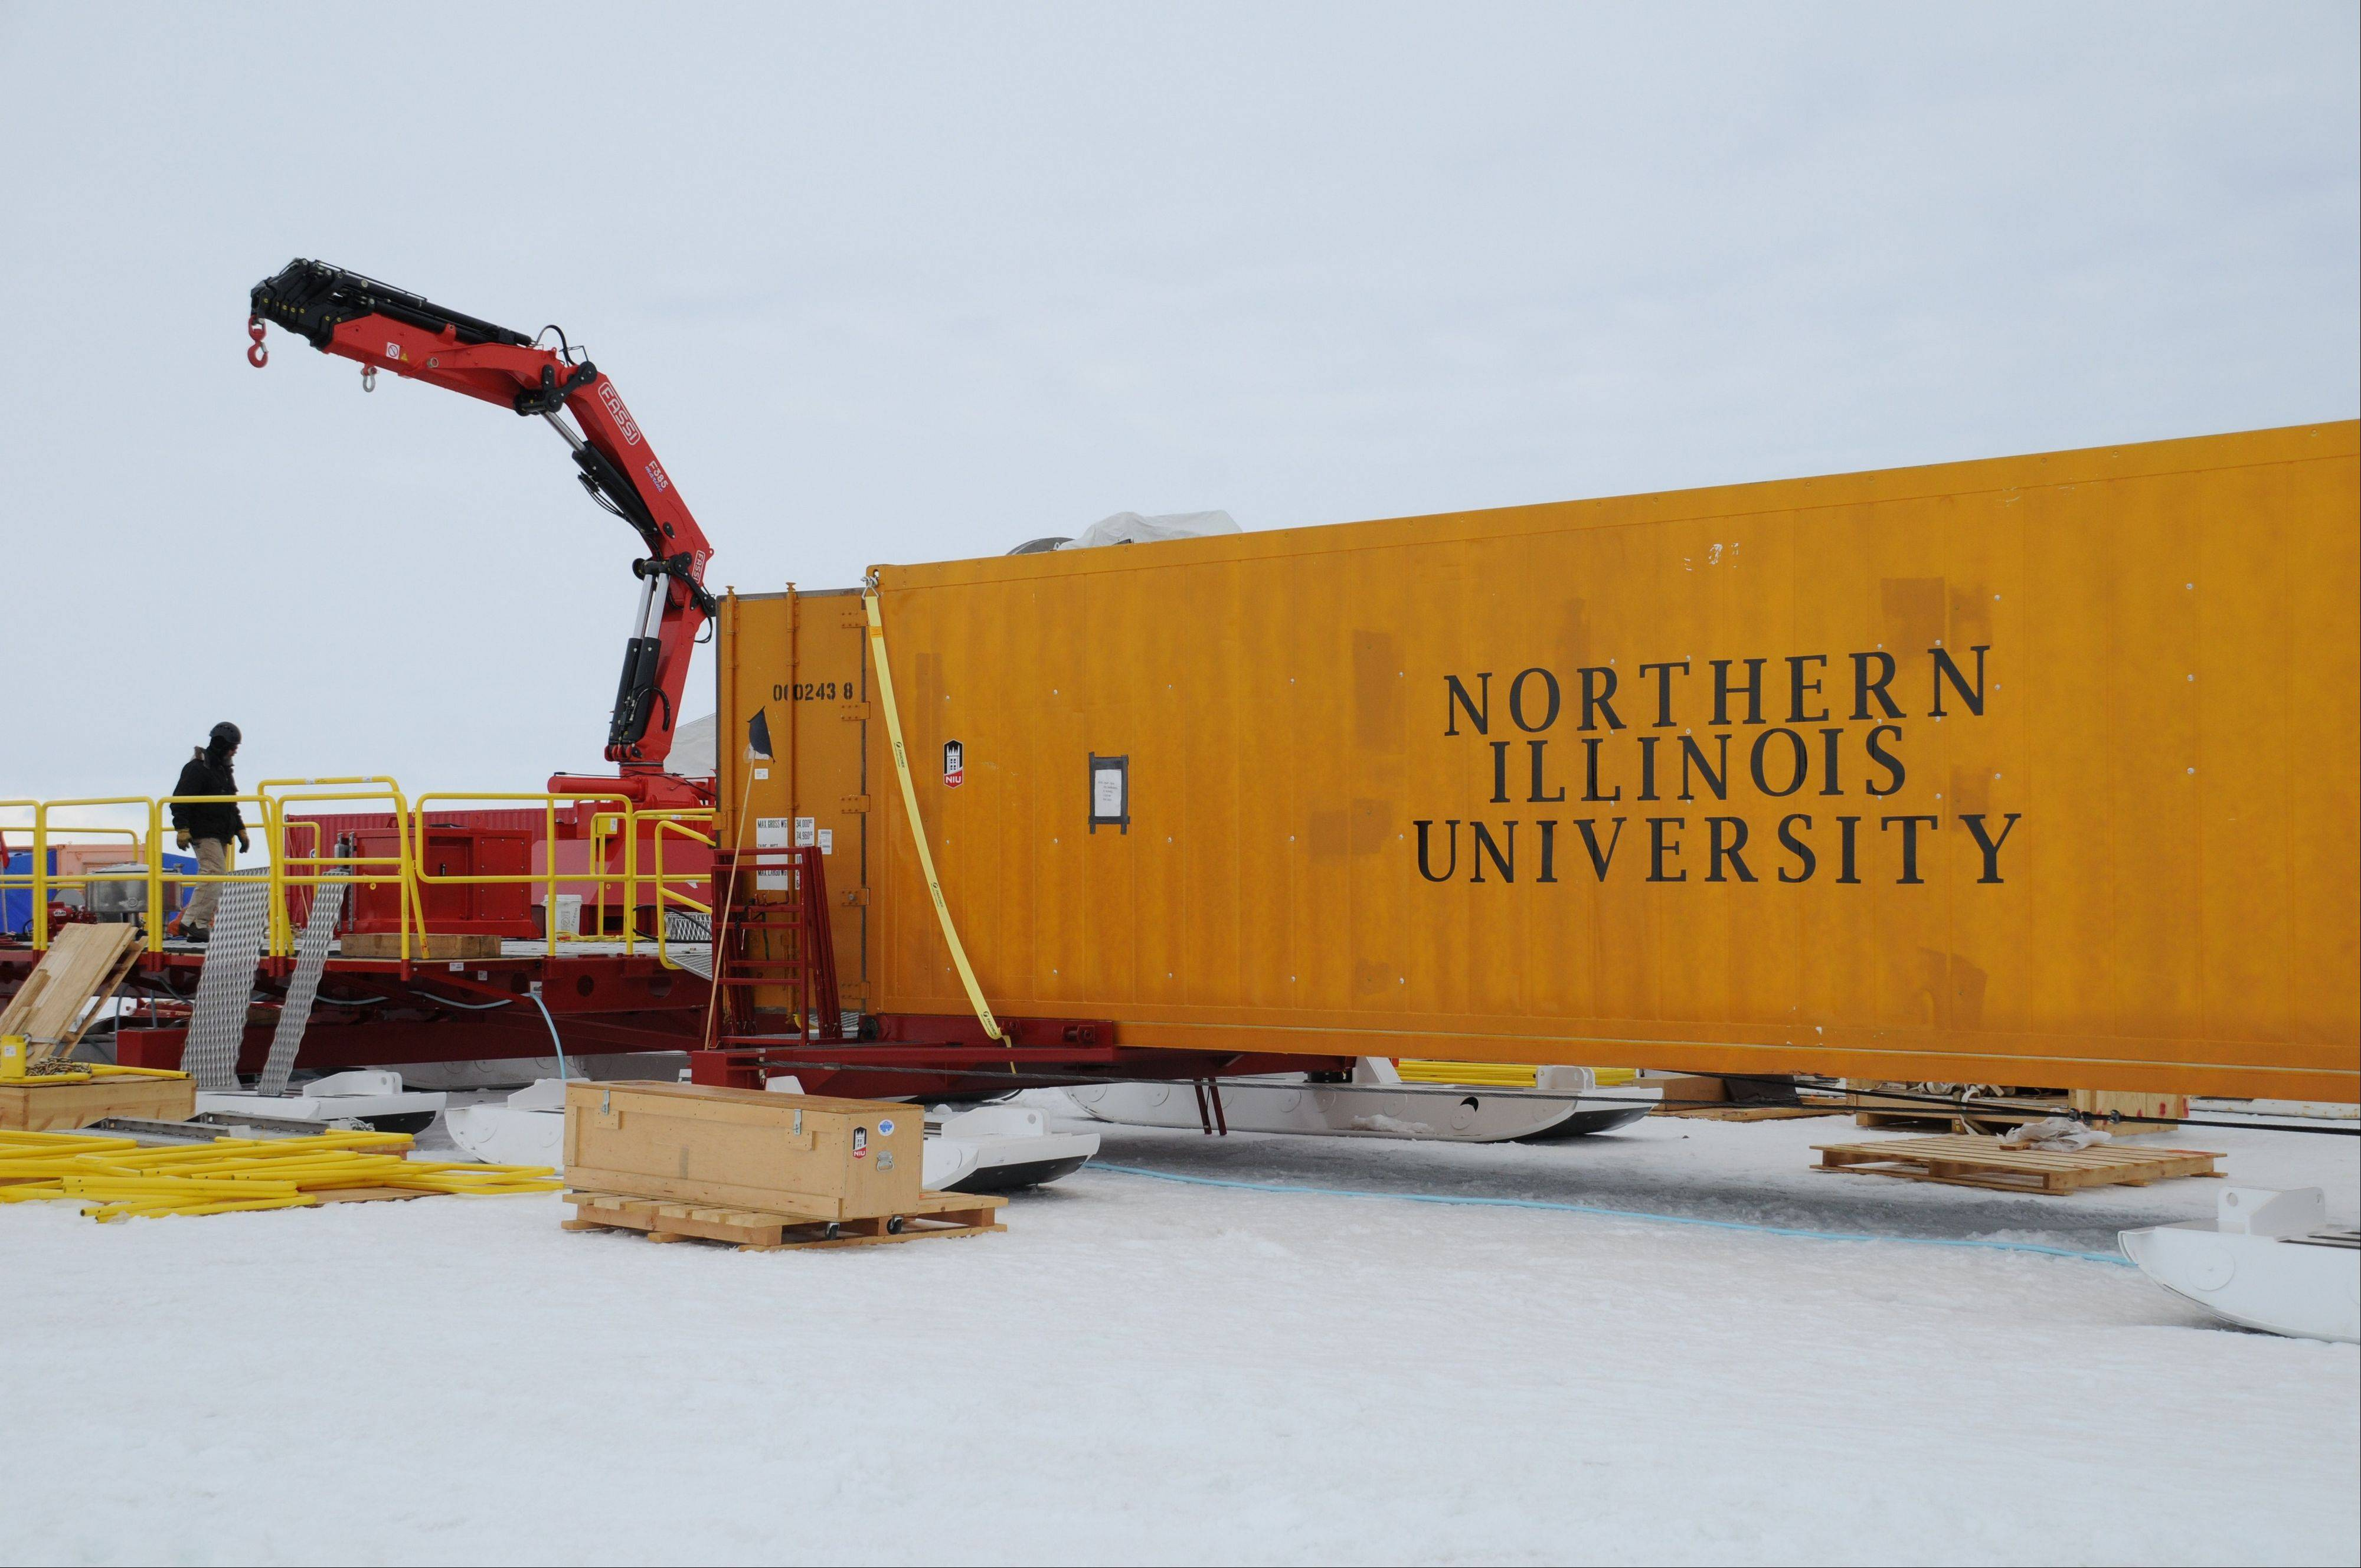 NIU Antarctic study, Fermilab activities in jeopardy from federal shutdown